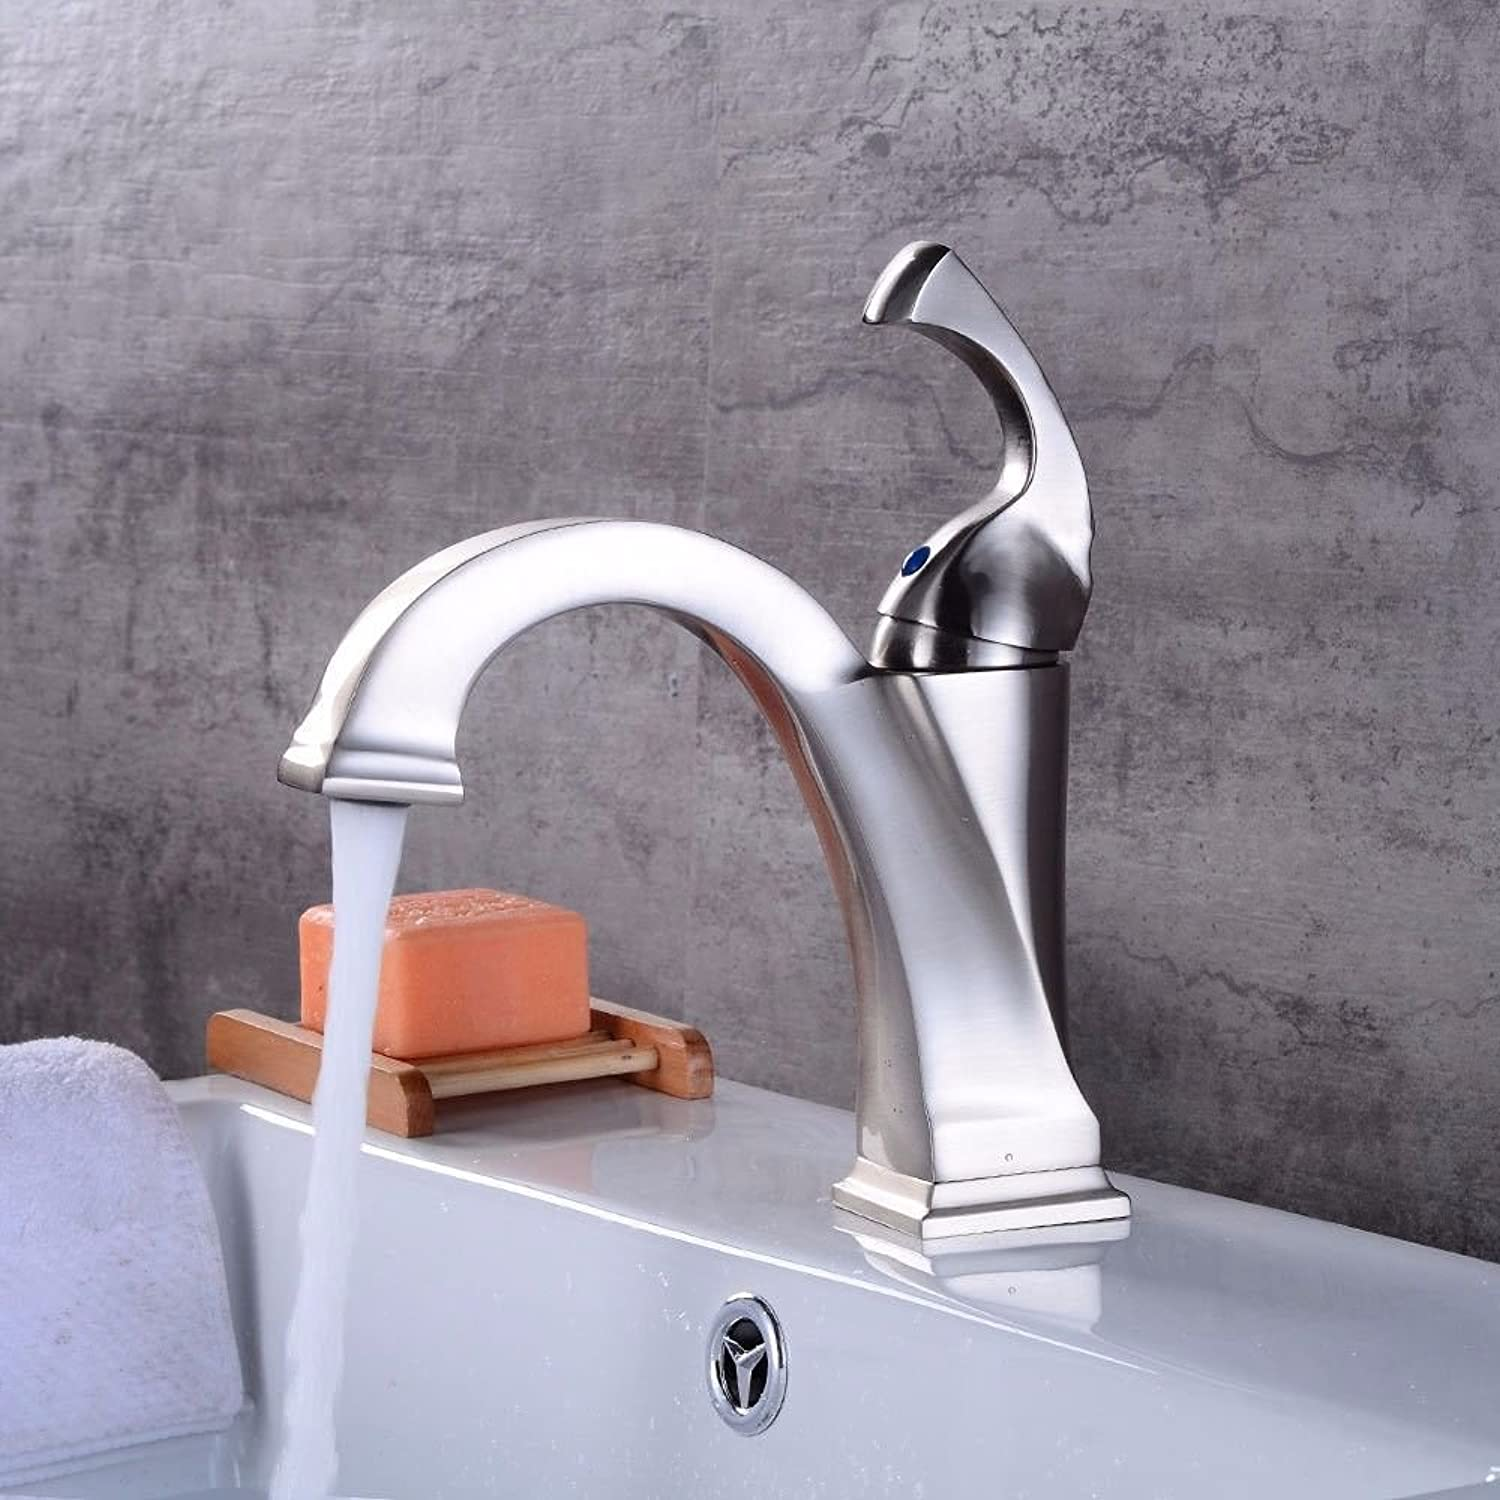 Modern simple copper hot and cold kitchen sink taps kitchen faucet Modern brushed hot and cold water ceramic valve single hole single handle bathroom basin mixer Suitable for bathroom kitchen sinks